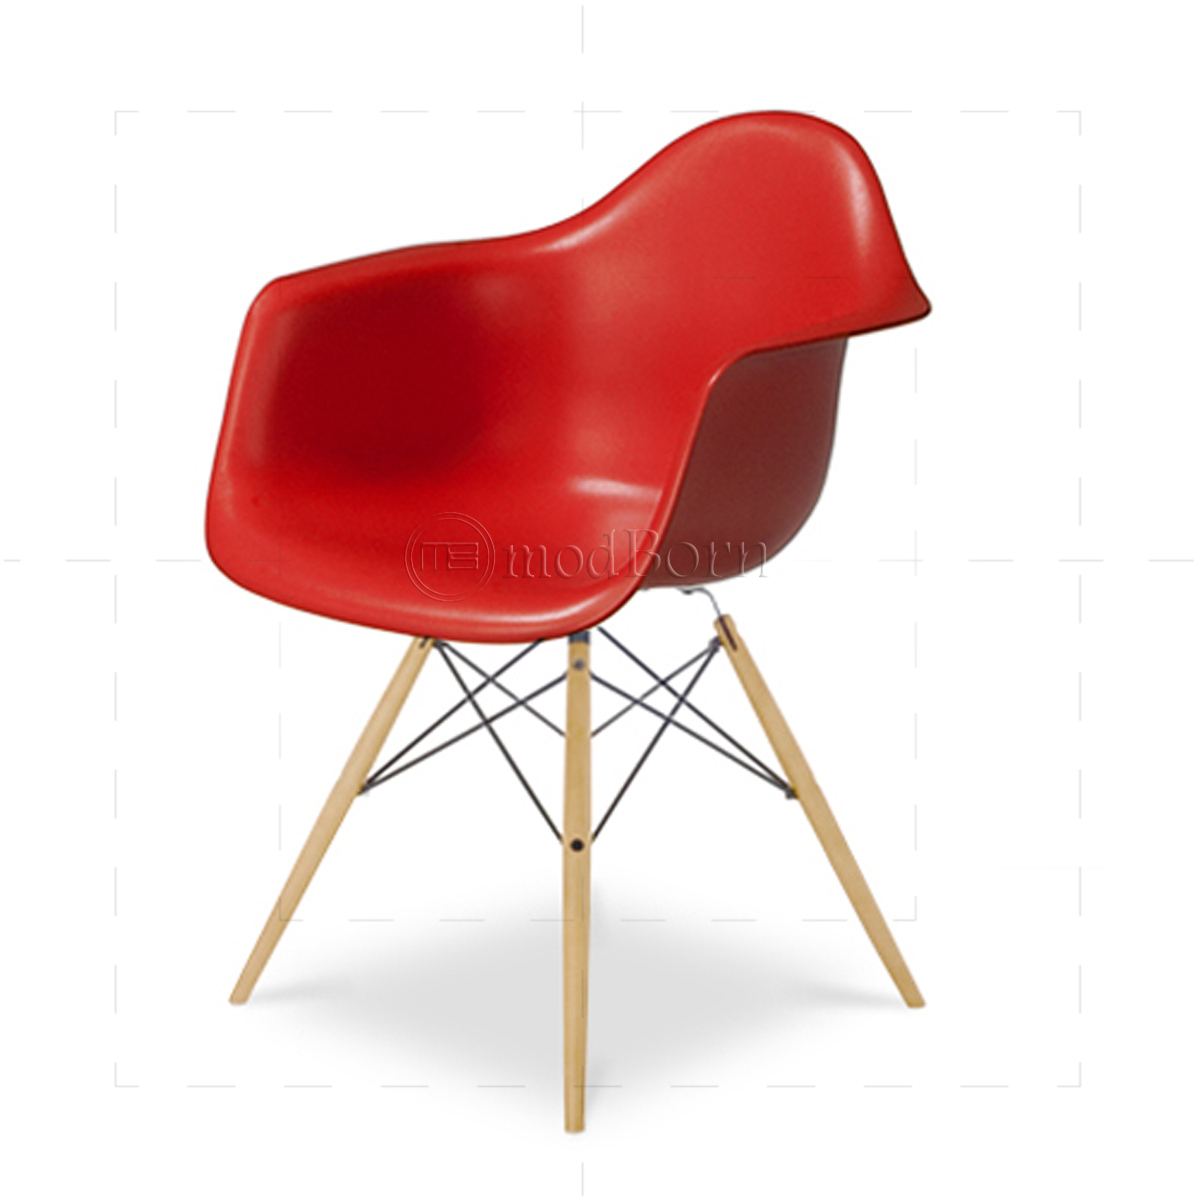 Eames style dining daw arm chair red replica for Eames chair replica deutschland